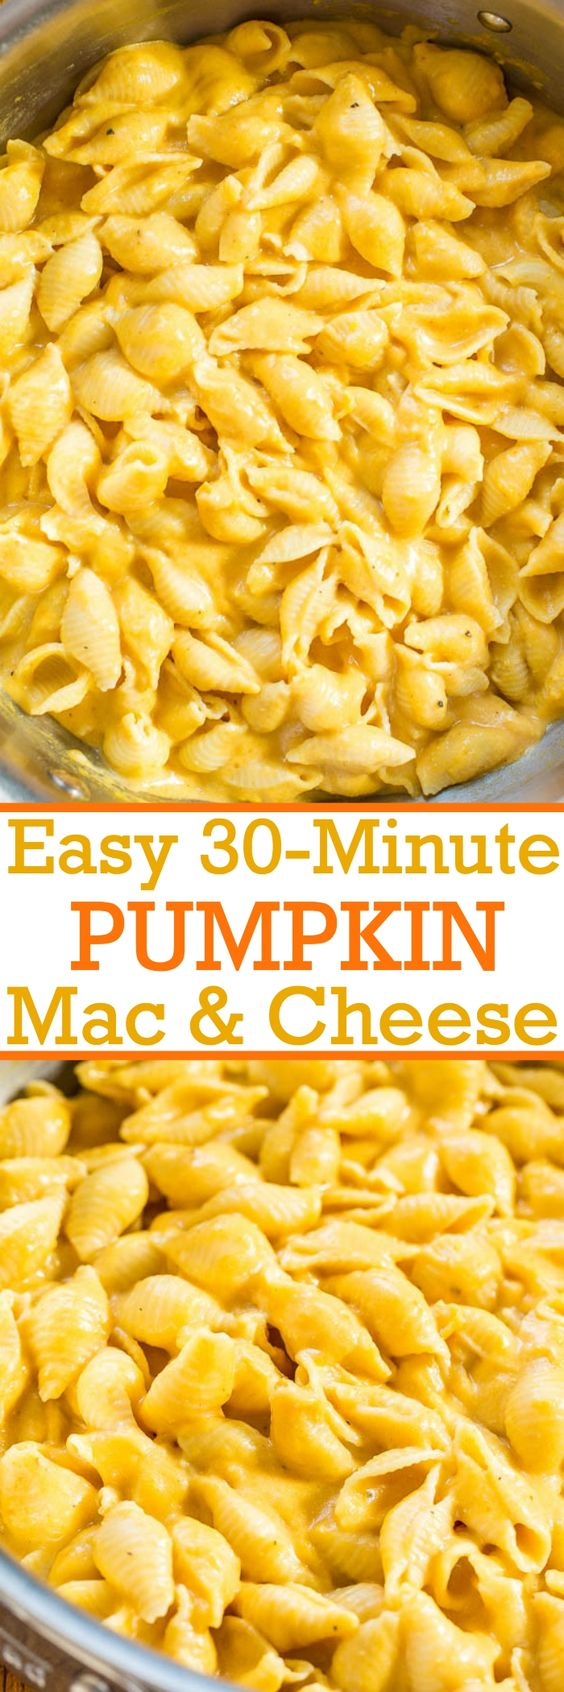 ... Pumpkin Macaroni and Cheese | Macaroni And Cheese, Macaroni and